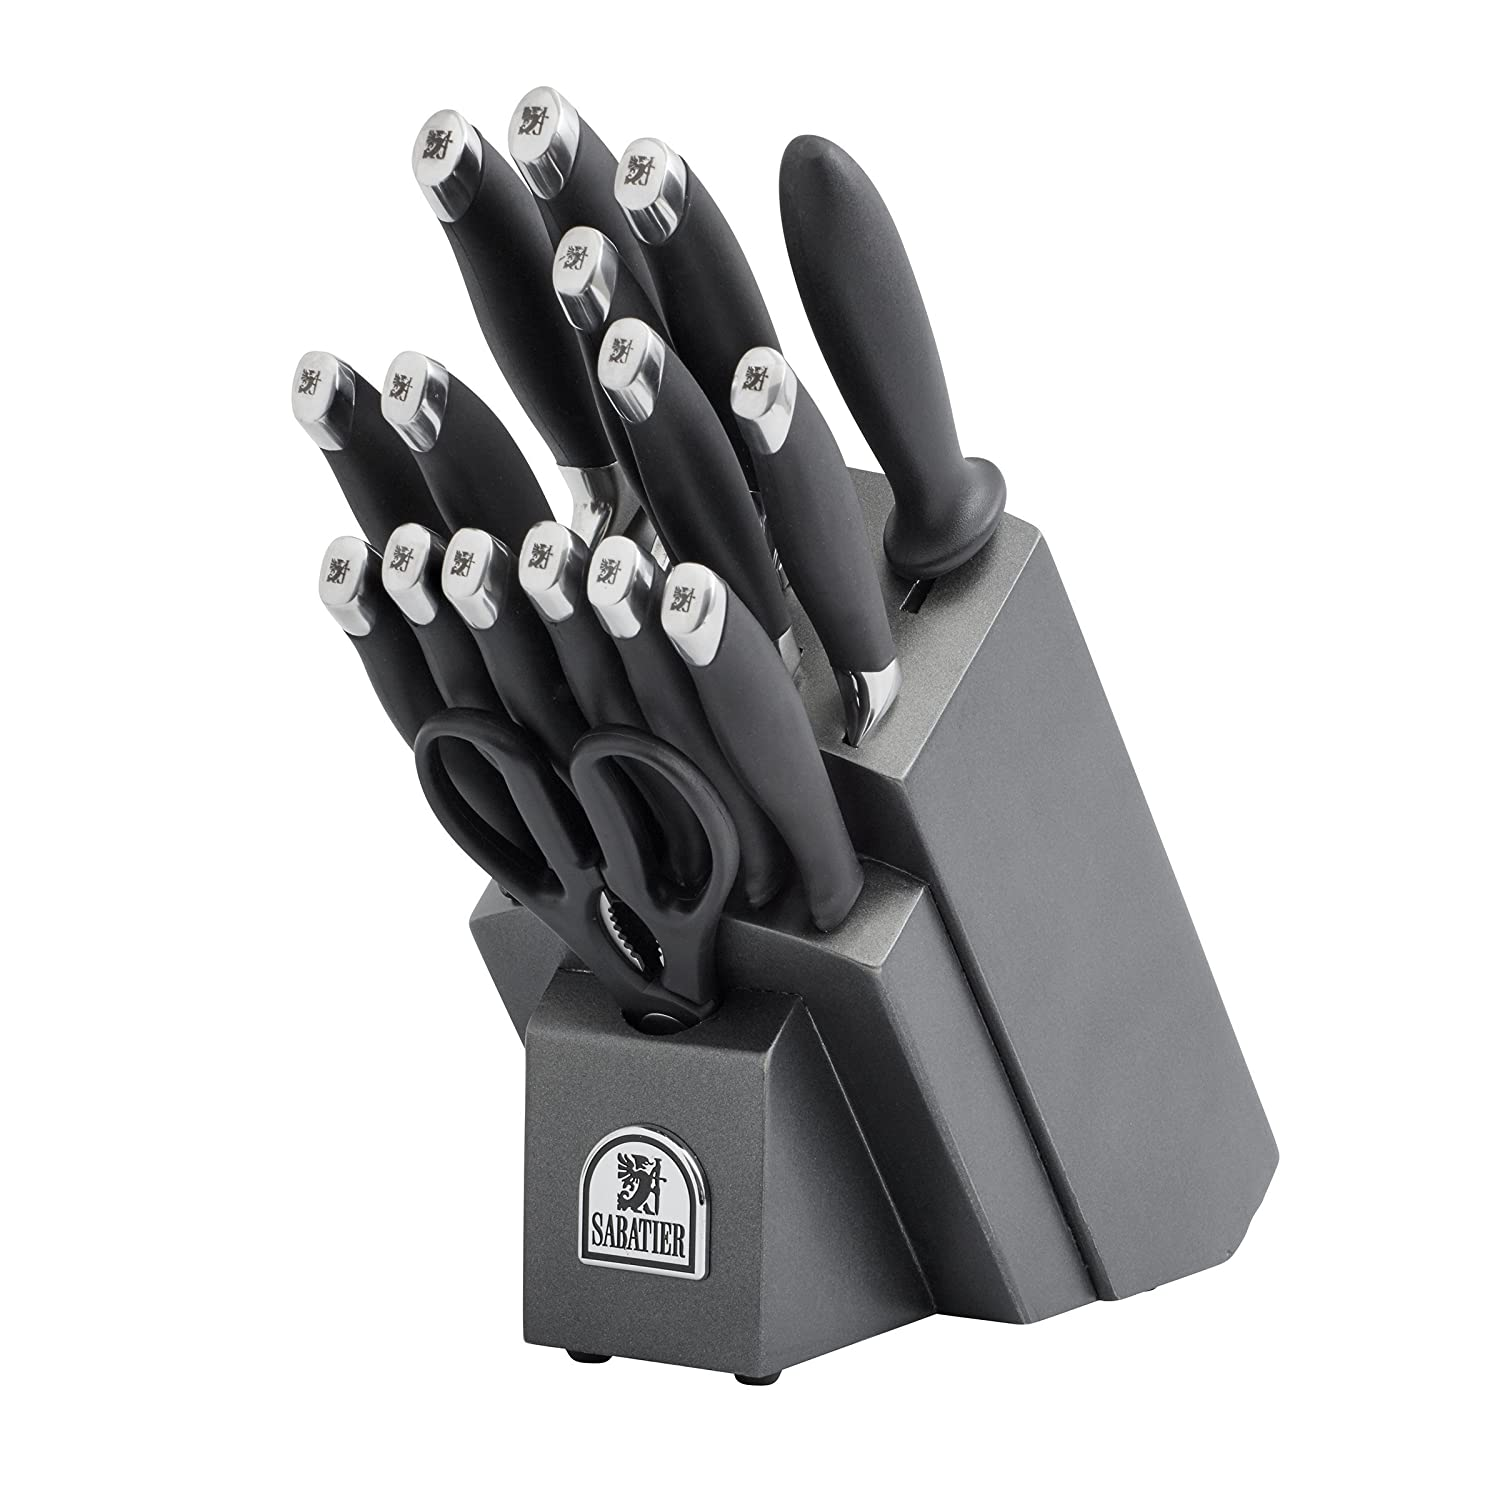 amazon com sabatier 17 piece soft grip forged stainless steel amazon com sabatier 17 piece soft grip forged stainless steel knife block set kitchen utility knives kitchen dining